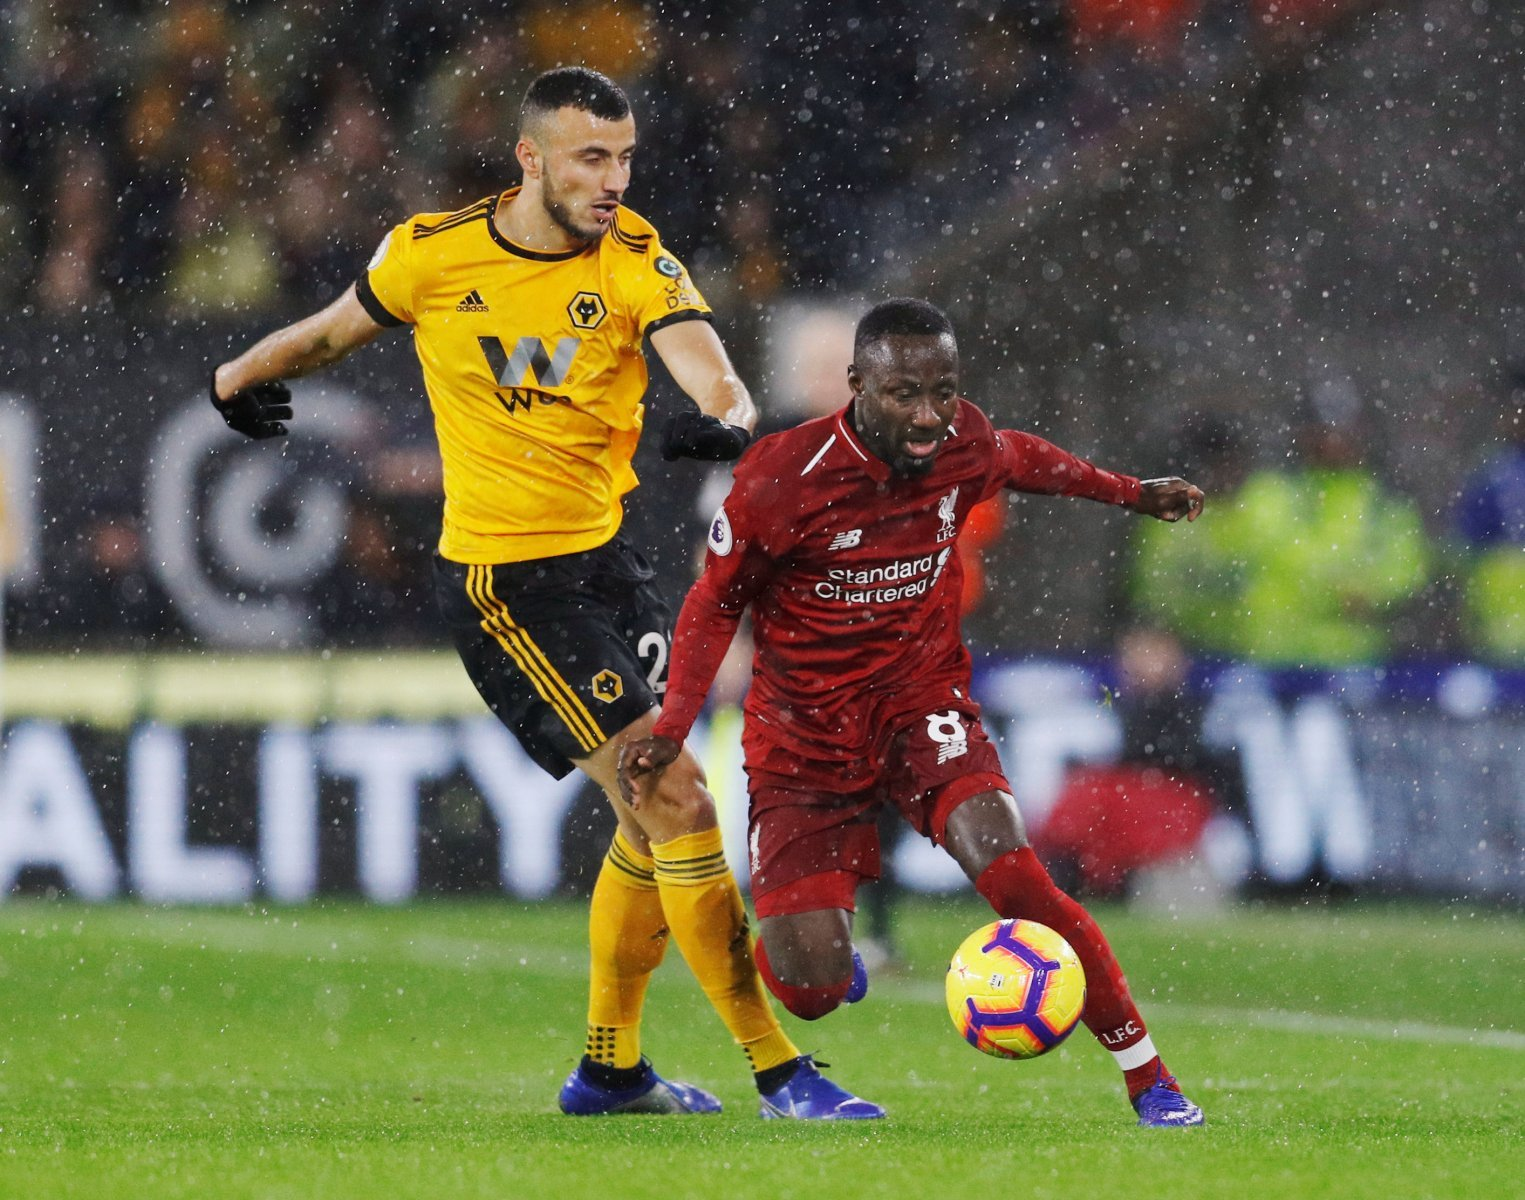 Liverpool: These fans were unconvinced by reports of Naby Keita's possible return from injury